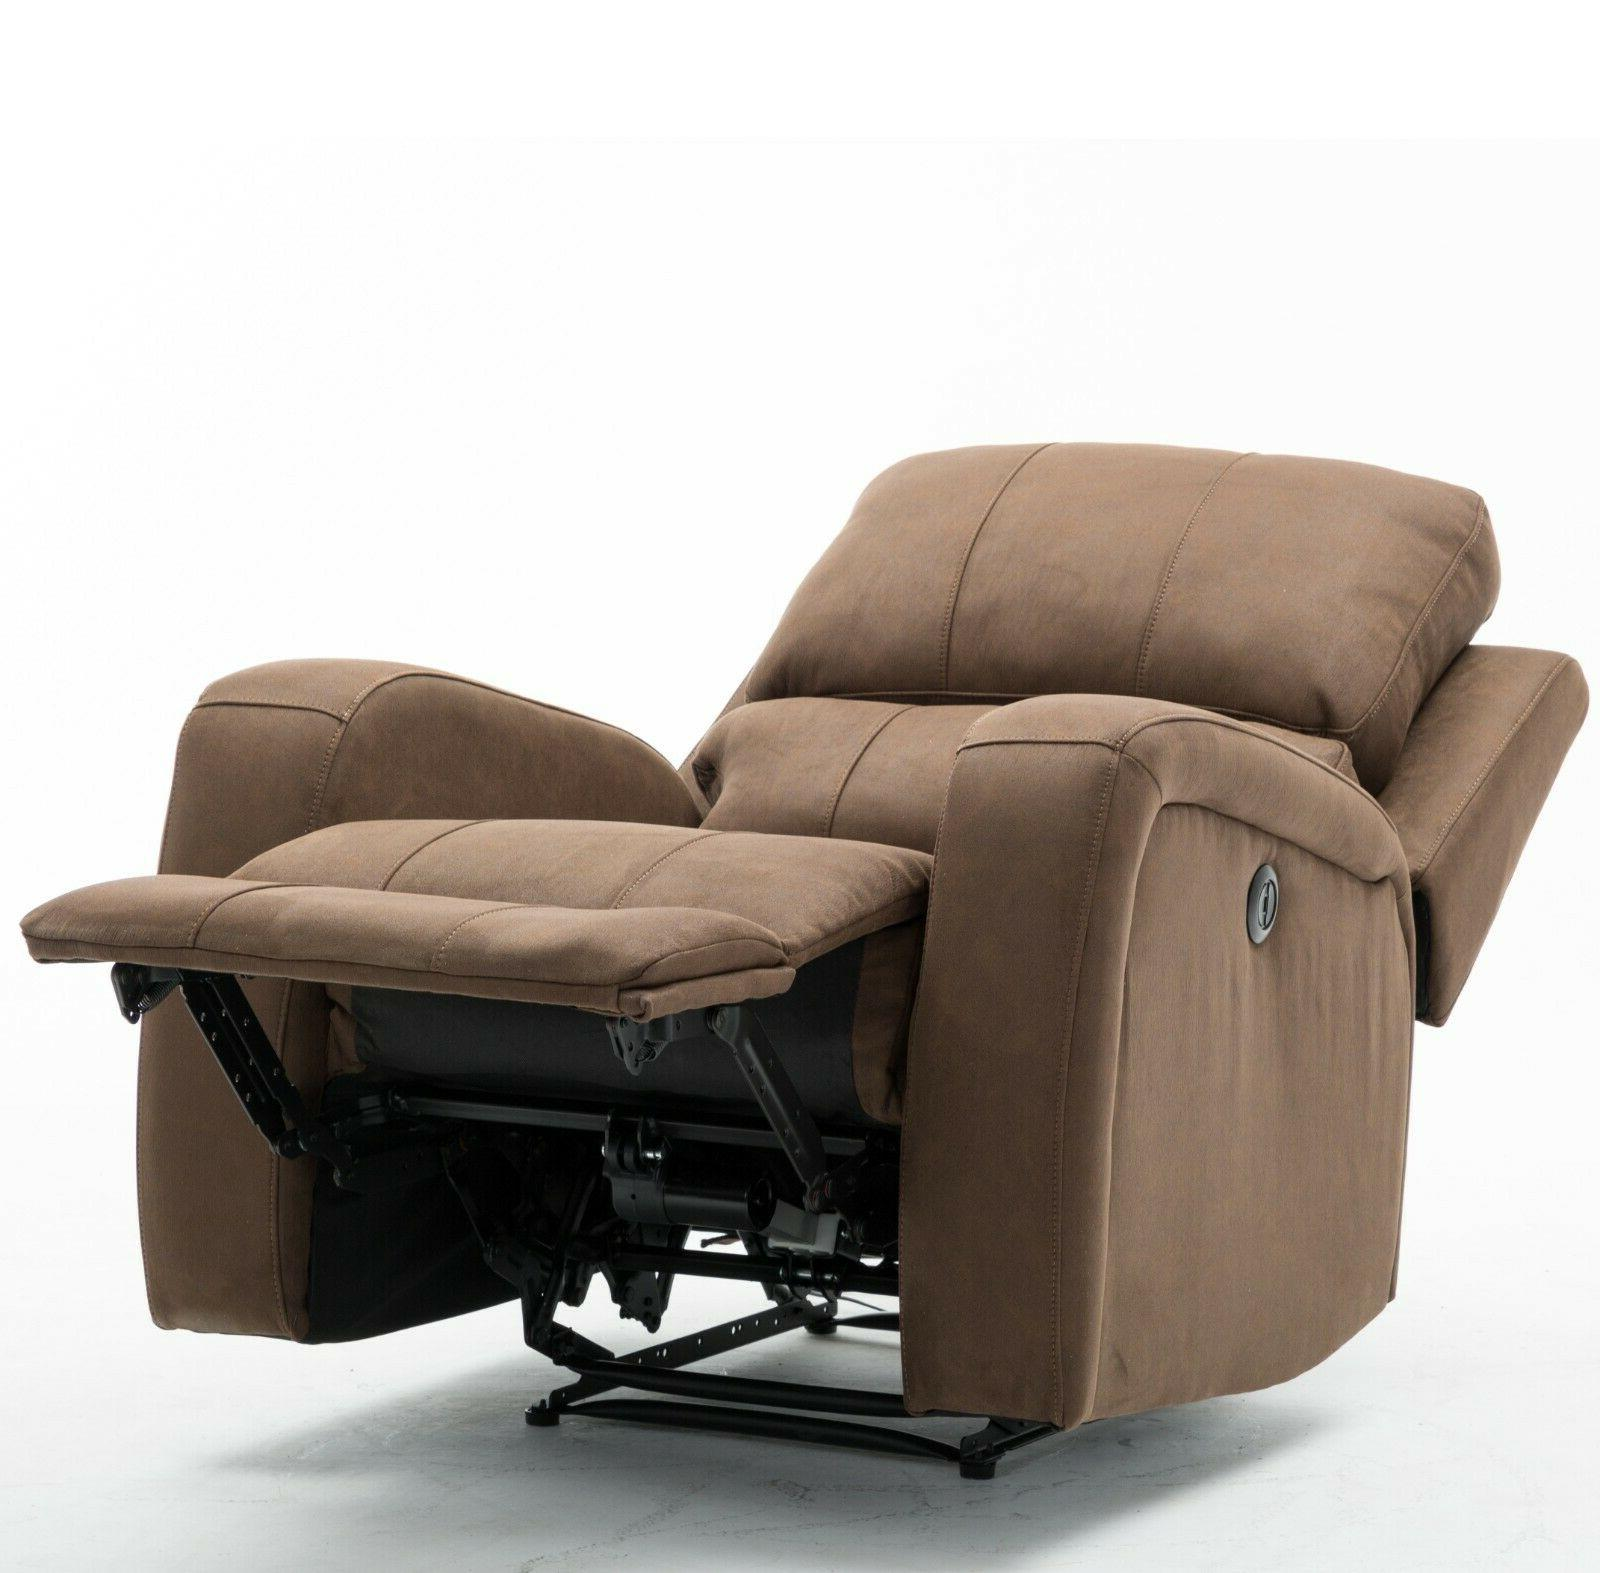 RECLINER CHAIR ELECTRIC POWER USB FURNITURE